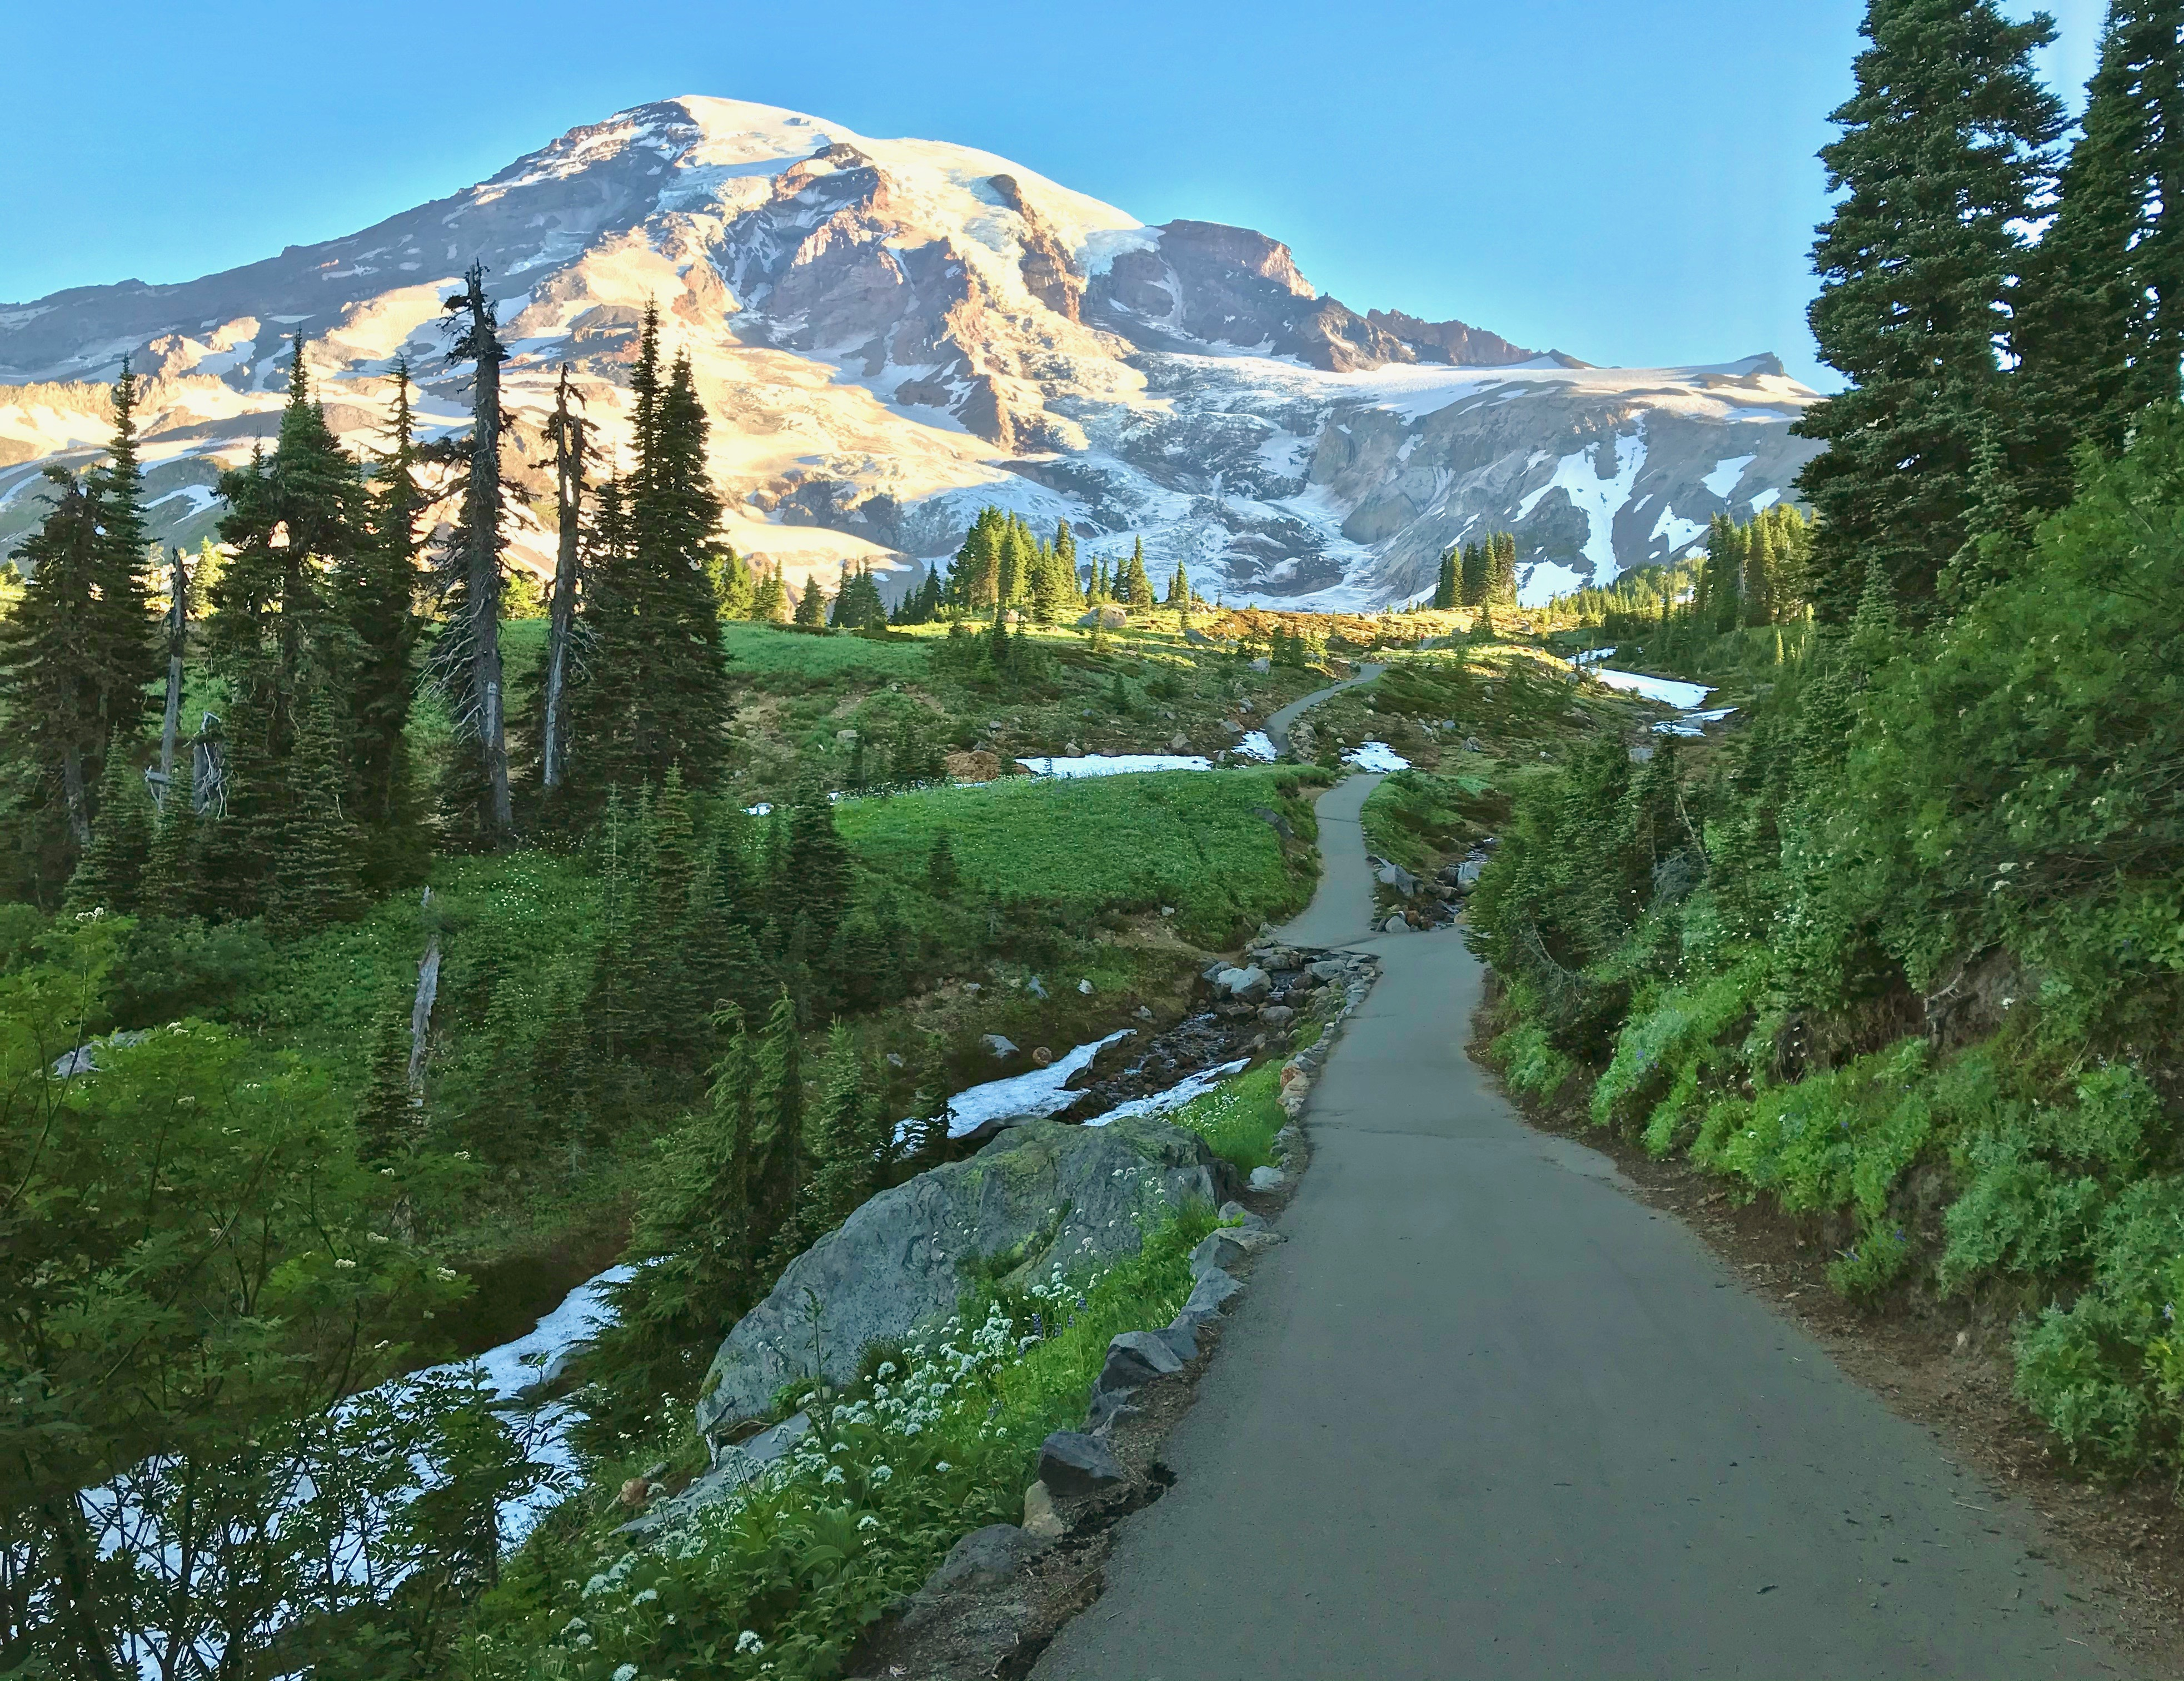 Mountain trail fringed by lush greenery with Rainier in distance.